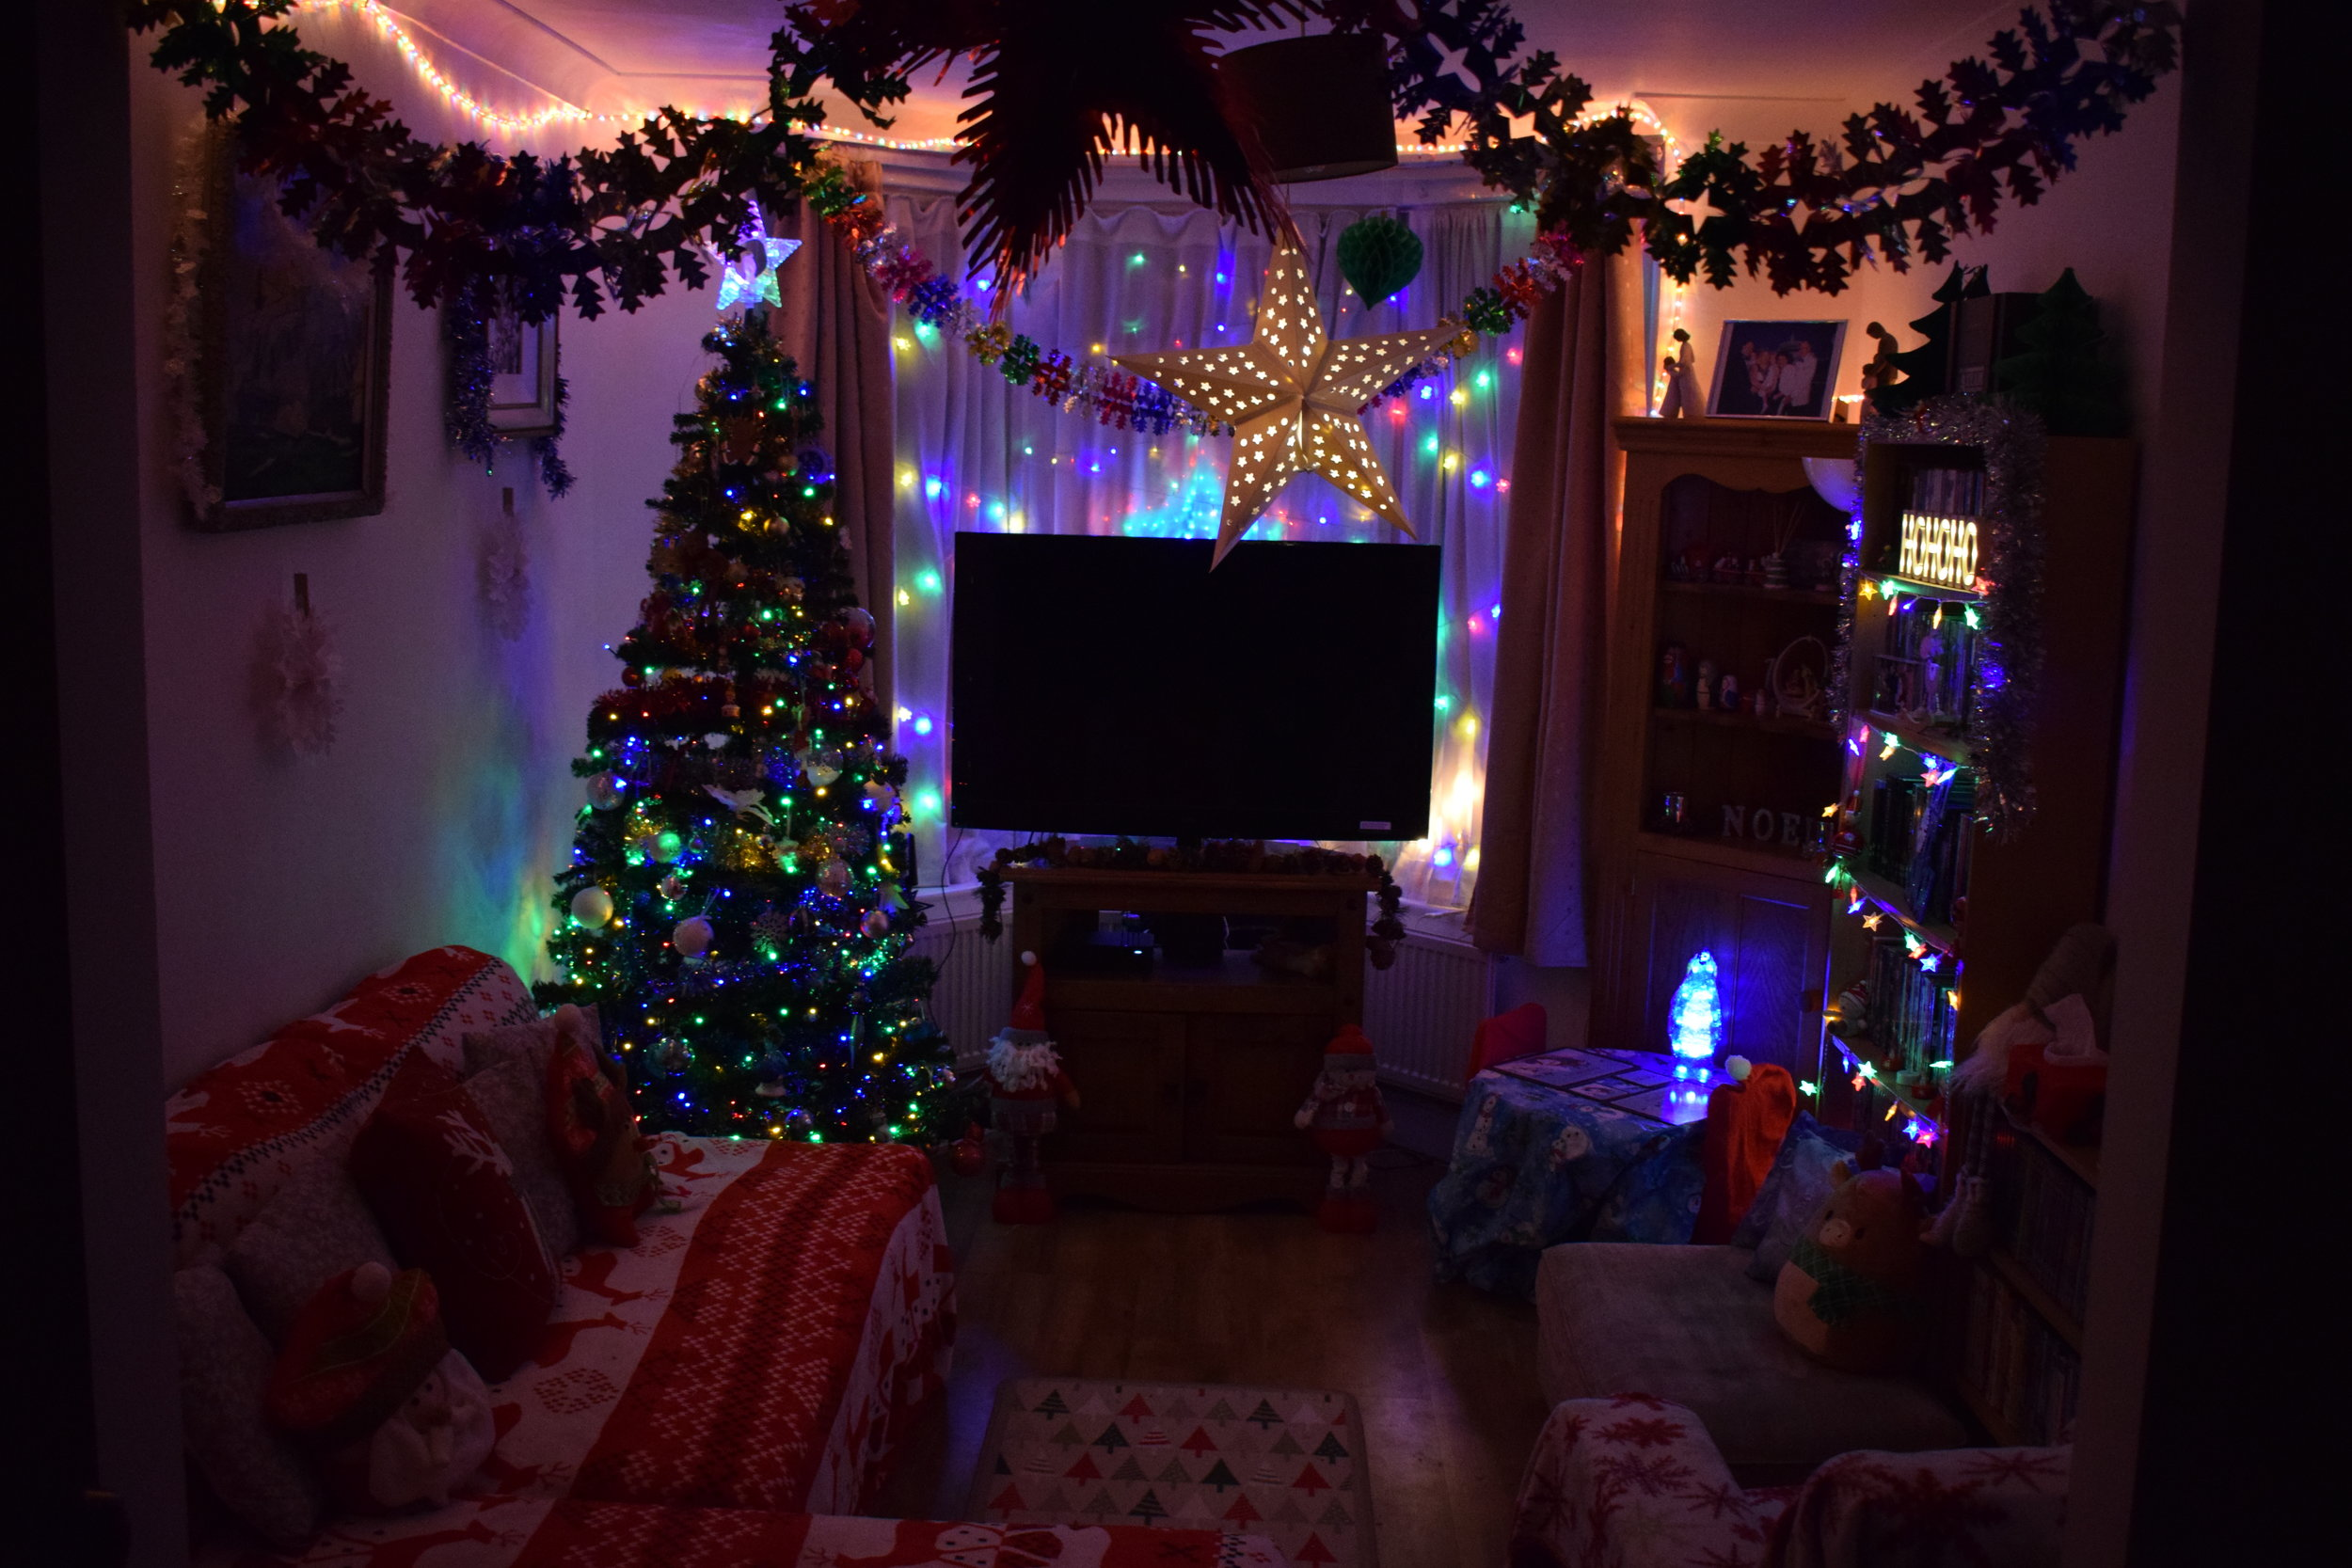 Our living room decorated for Christmas